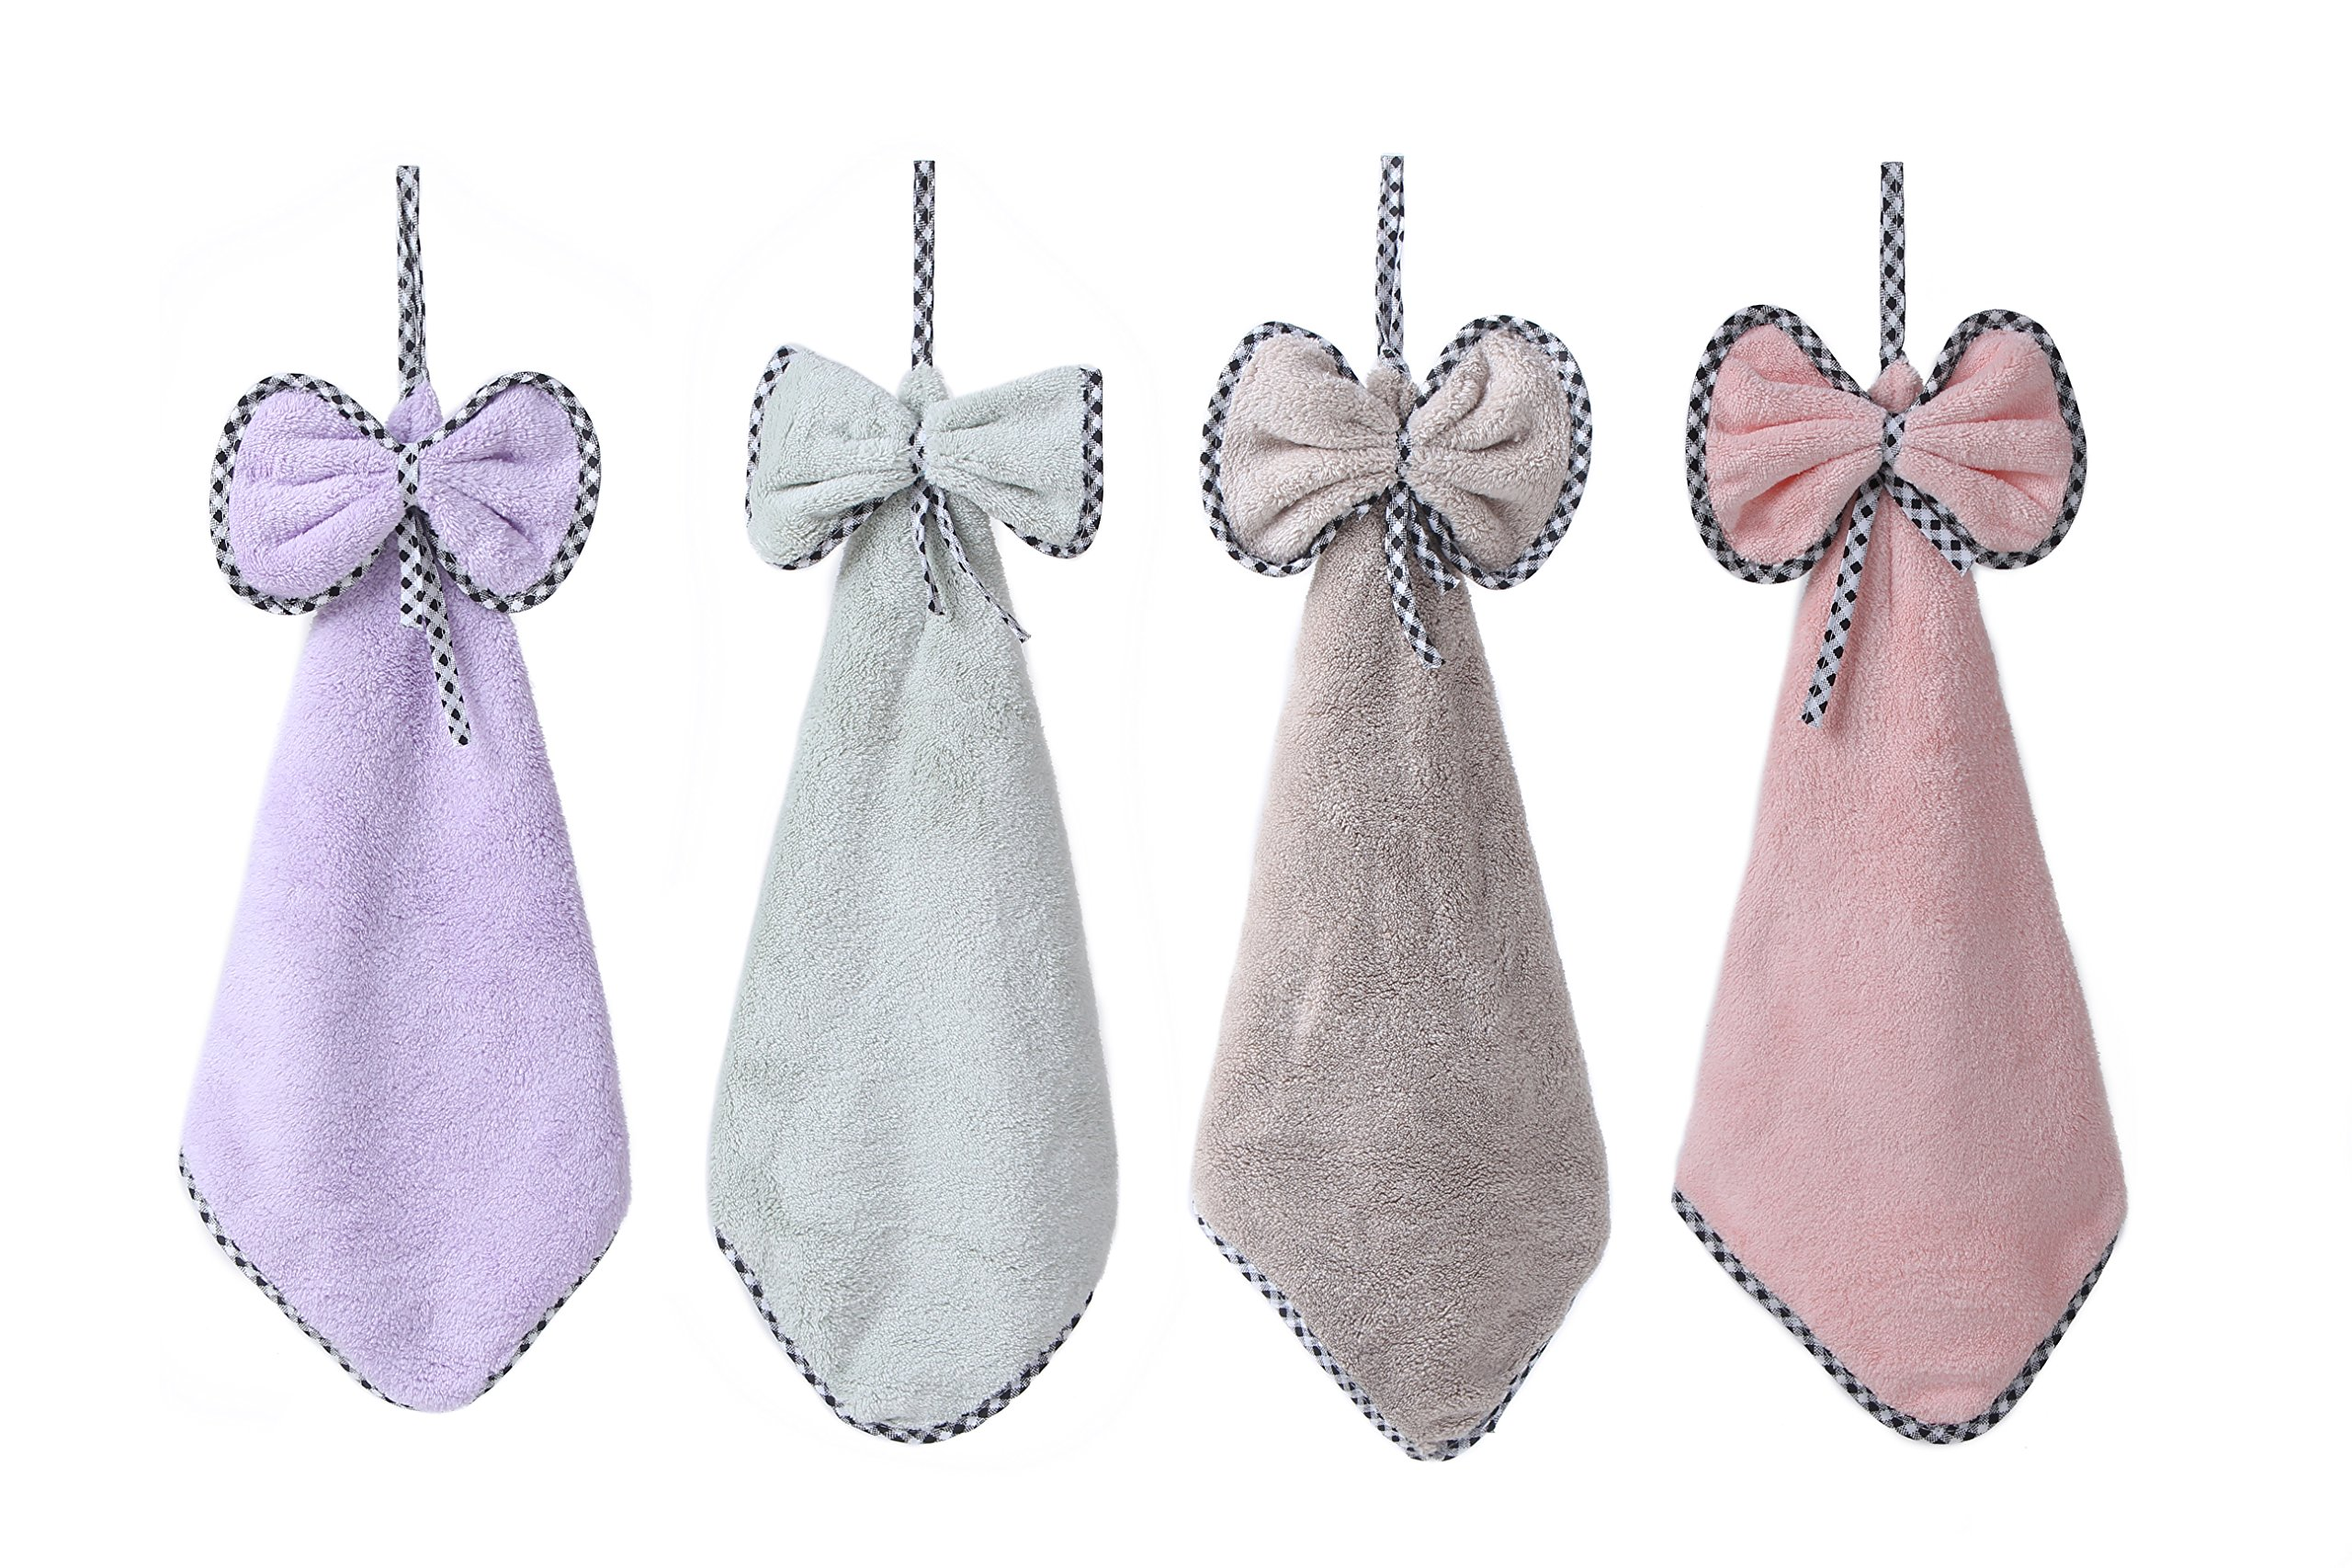 """Kitchen Towels-4 Pack, Microfiber Coral Fleece Hand Towel with Convenient Hanging Loop Machine Washable Ultra Absorbent Fast Drying 15.7""""x15.7"""" (BIG BOW TIE)"""